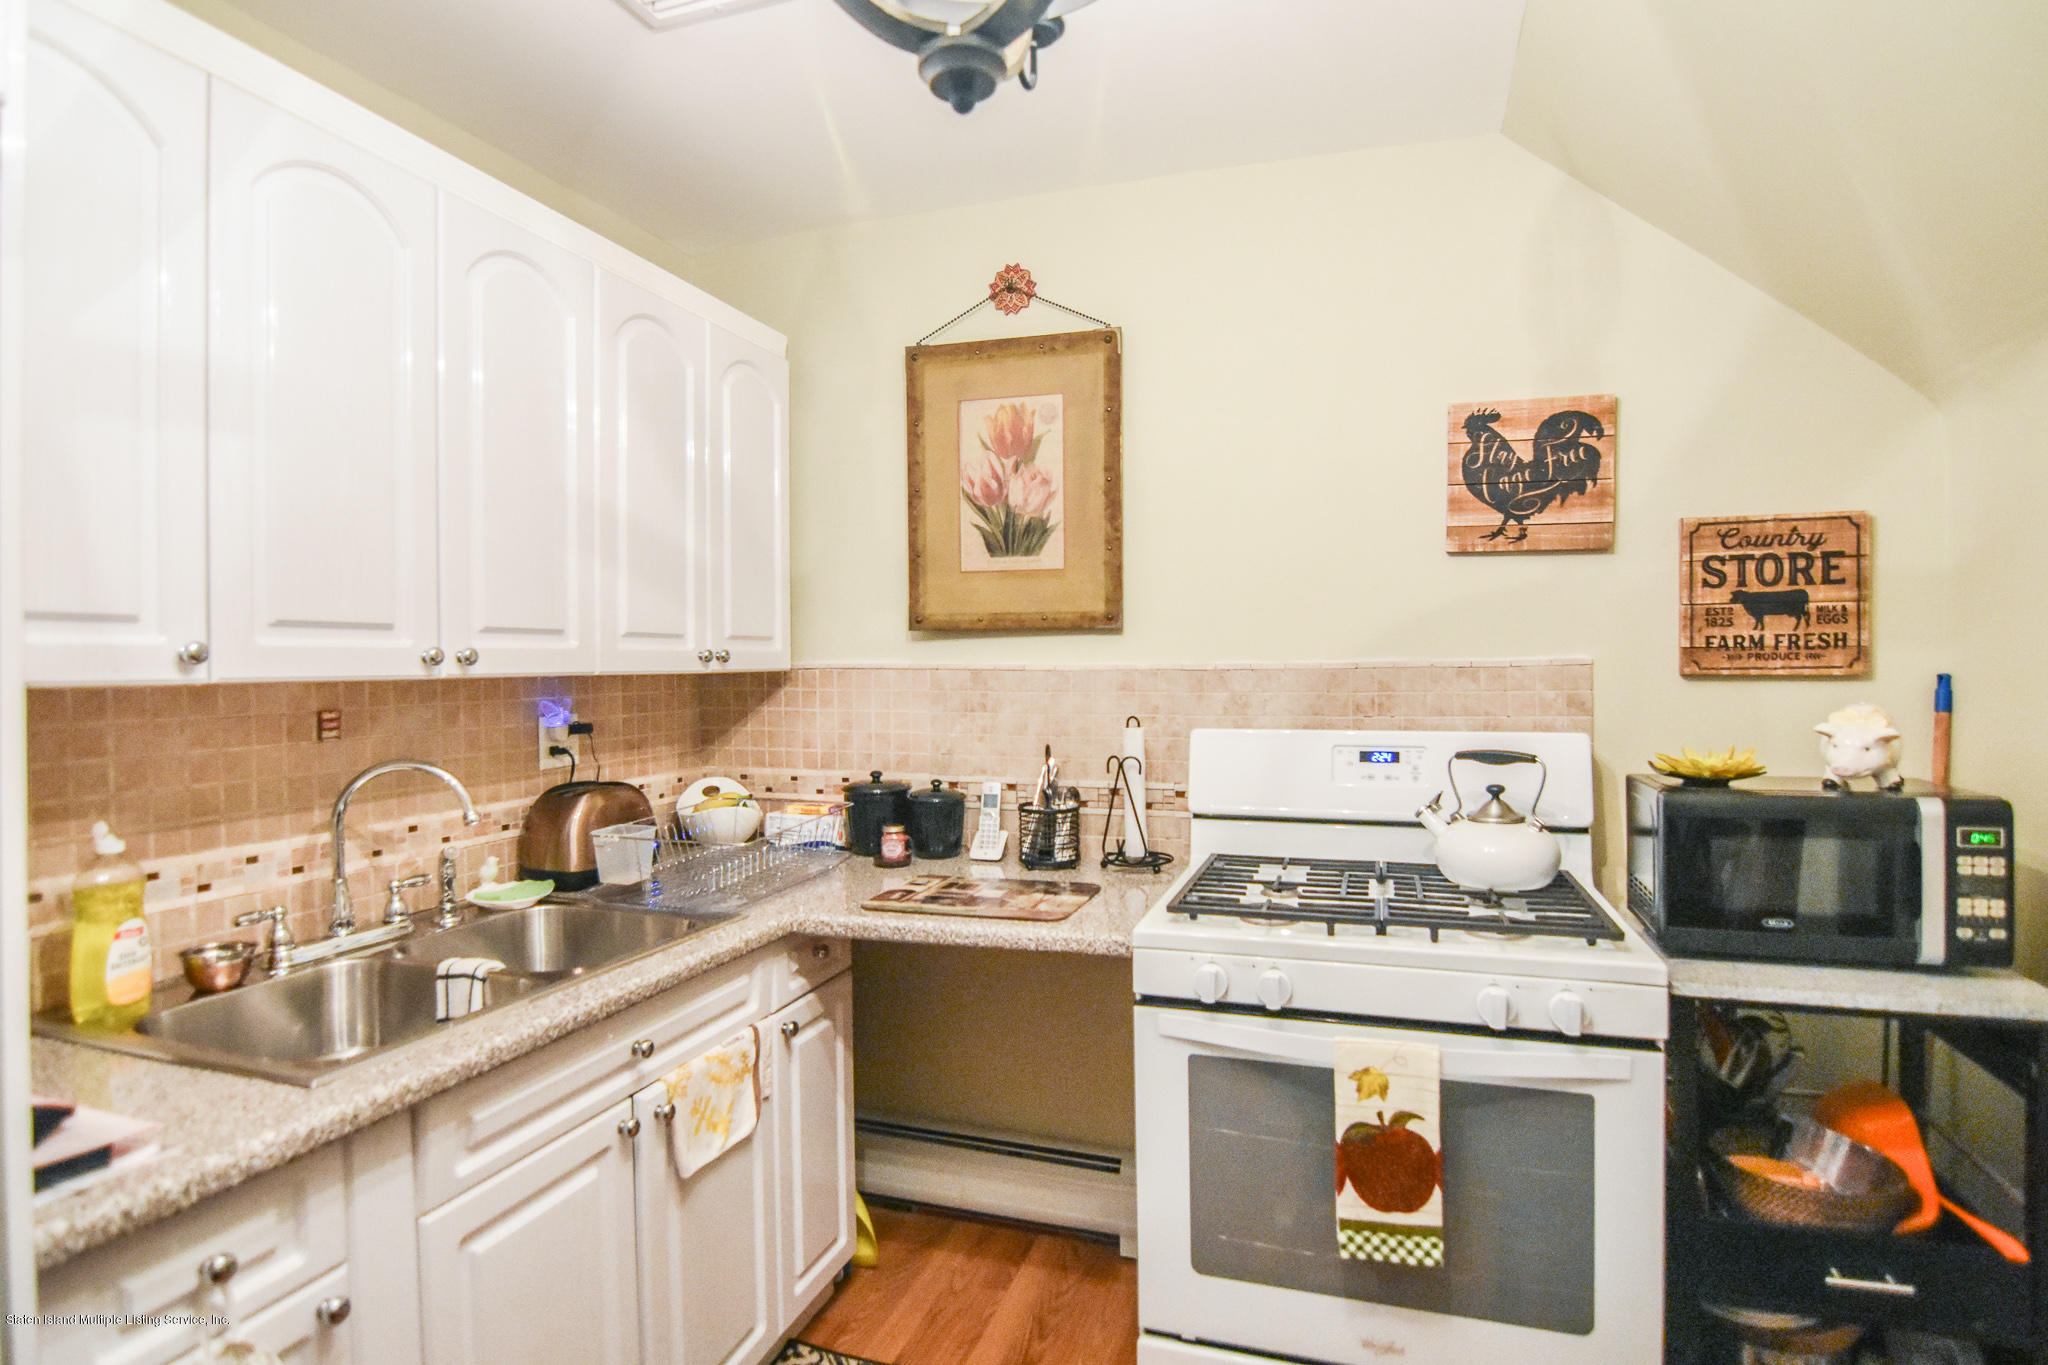 Single Family - Detached 45 Androvette Avenue  Staten Island, NY 10312, MLS-1130190-26